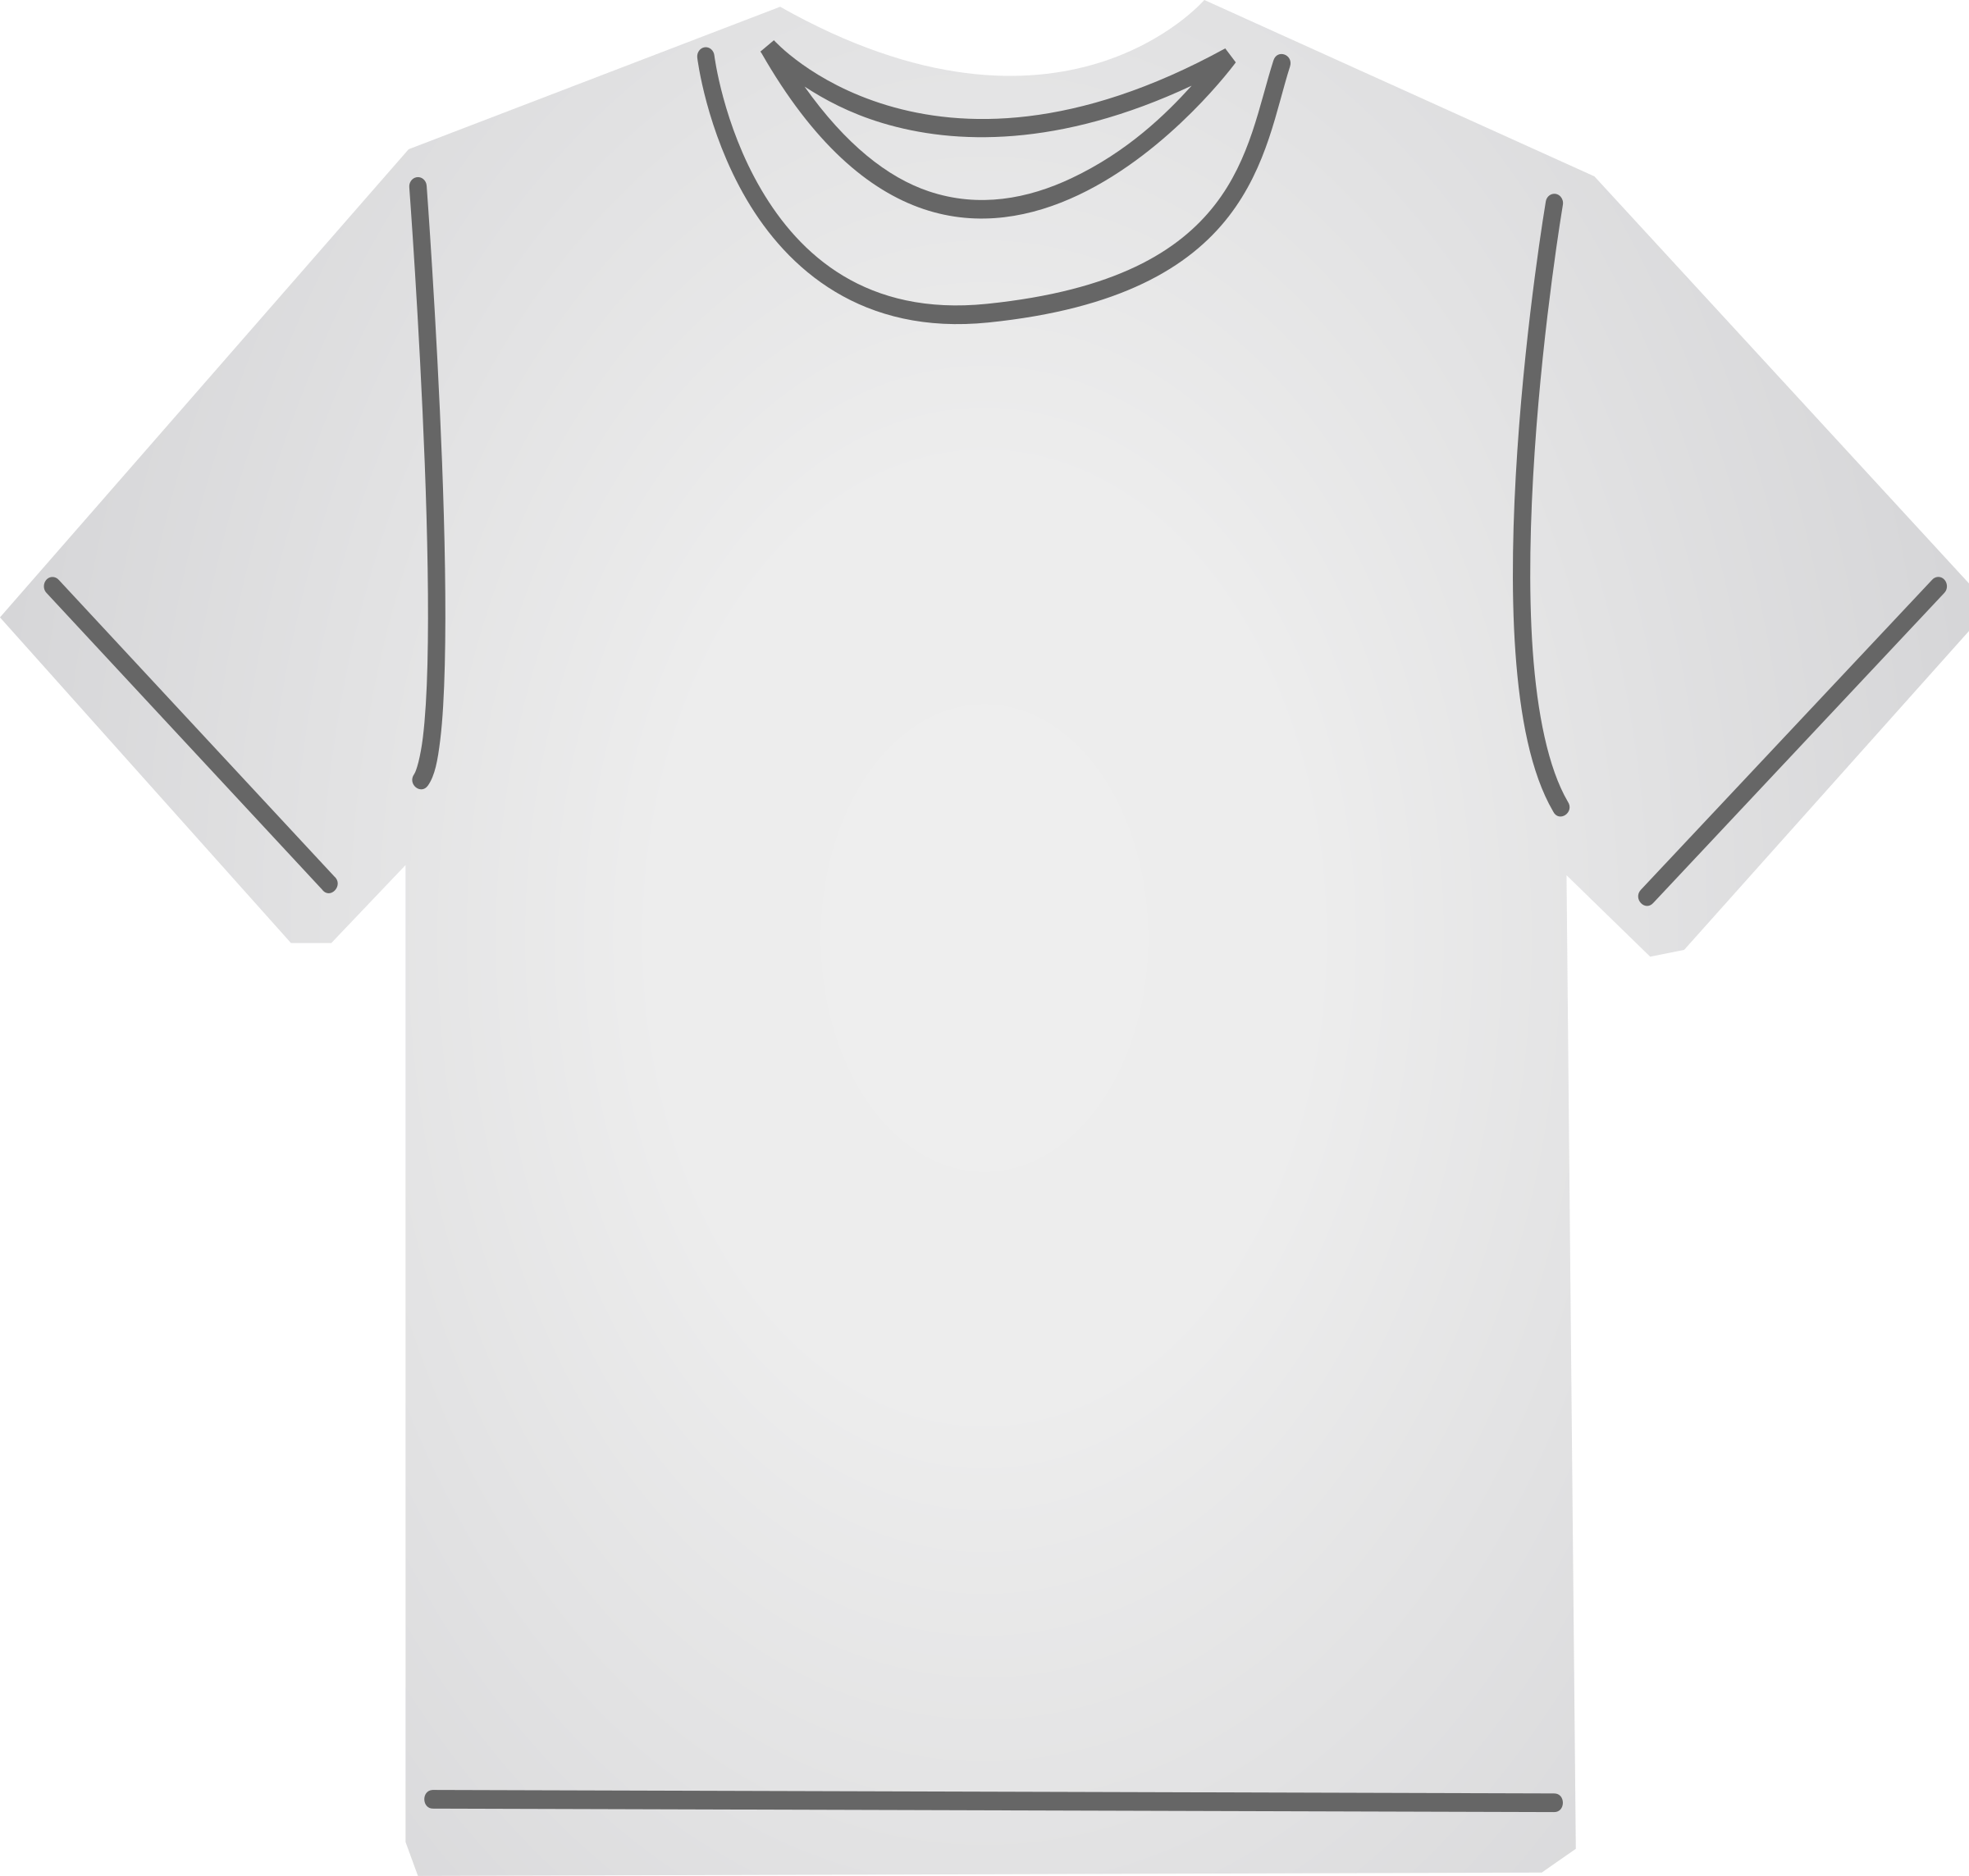 T shirt cartoon png. White icons free and